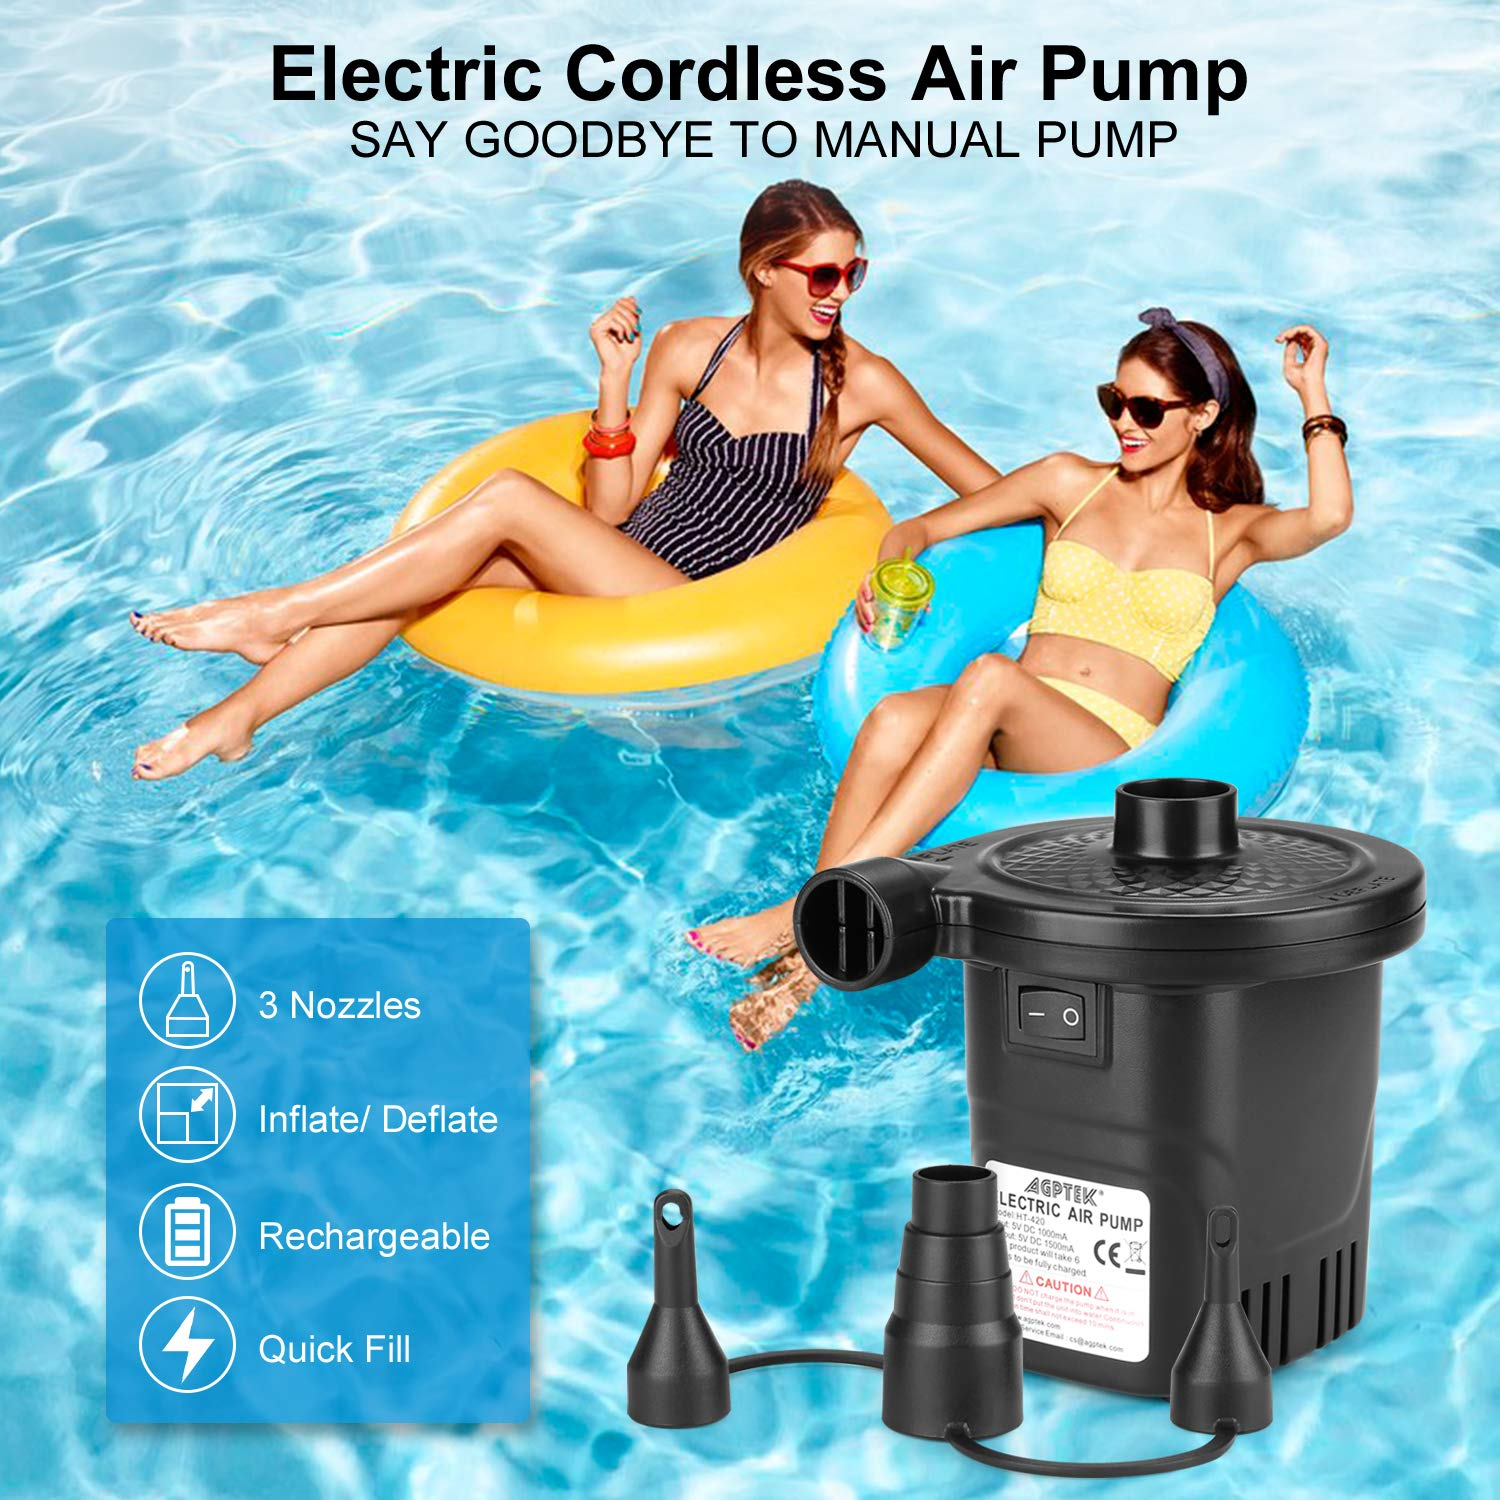 Electric Pump Quick-Fill Inflator /& Deflator with 3 Nozzles AGPTEK Rechargeable Air Pump Lightweight /& Portable Rechargeable Air Pump Perfect for Air Bed Air Mattresses Pool Toy /& Inflatable Boats